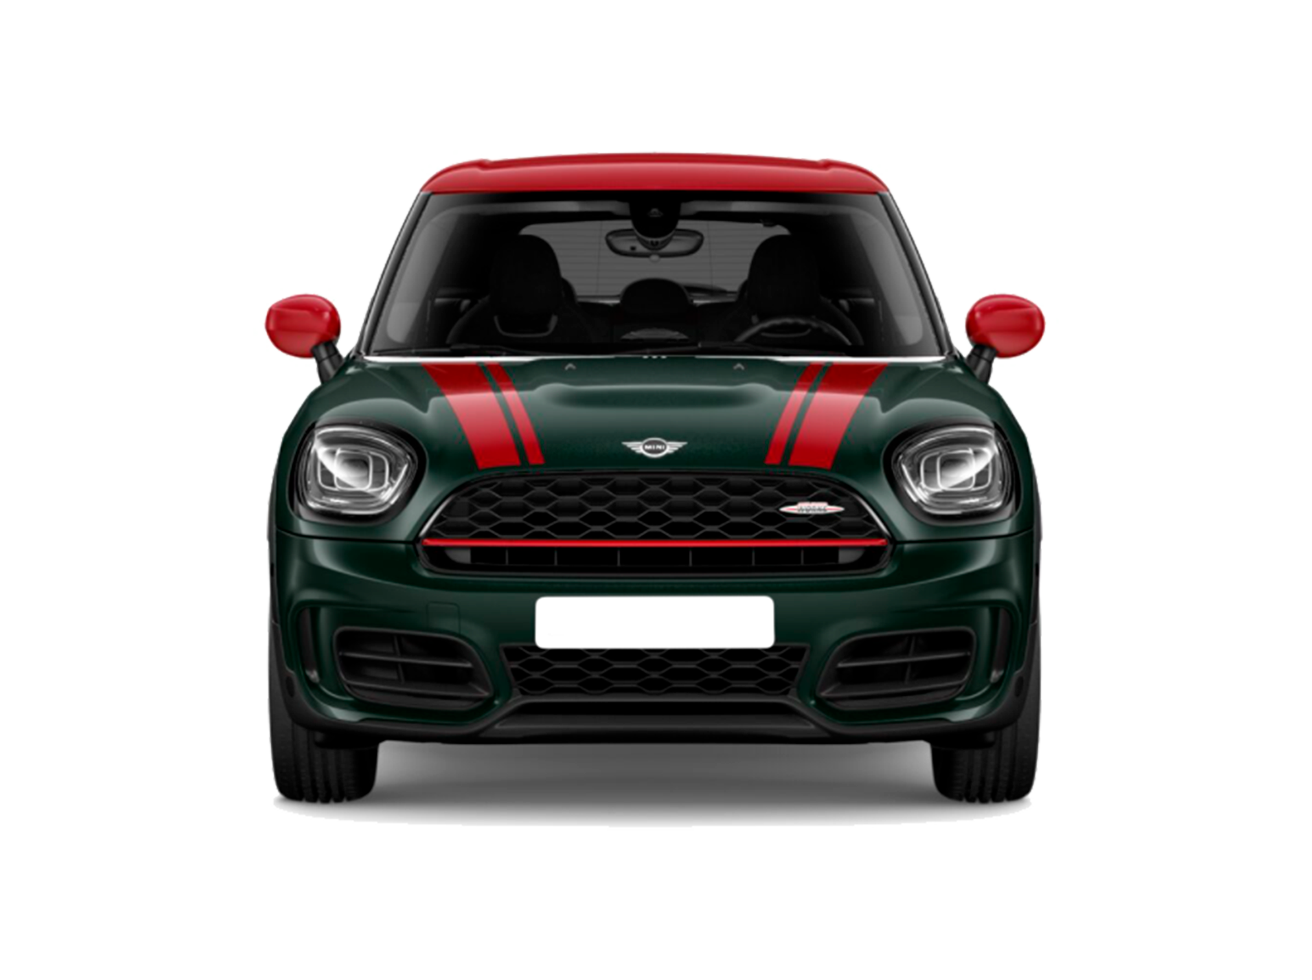 1.5 12V TWINPOWER TURBO HYBRID COOPER S E EXCLUSIVE ALL4 STEPTRONIC